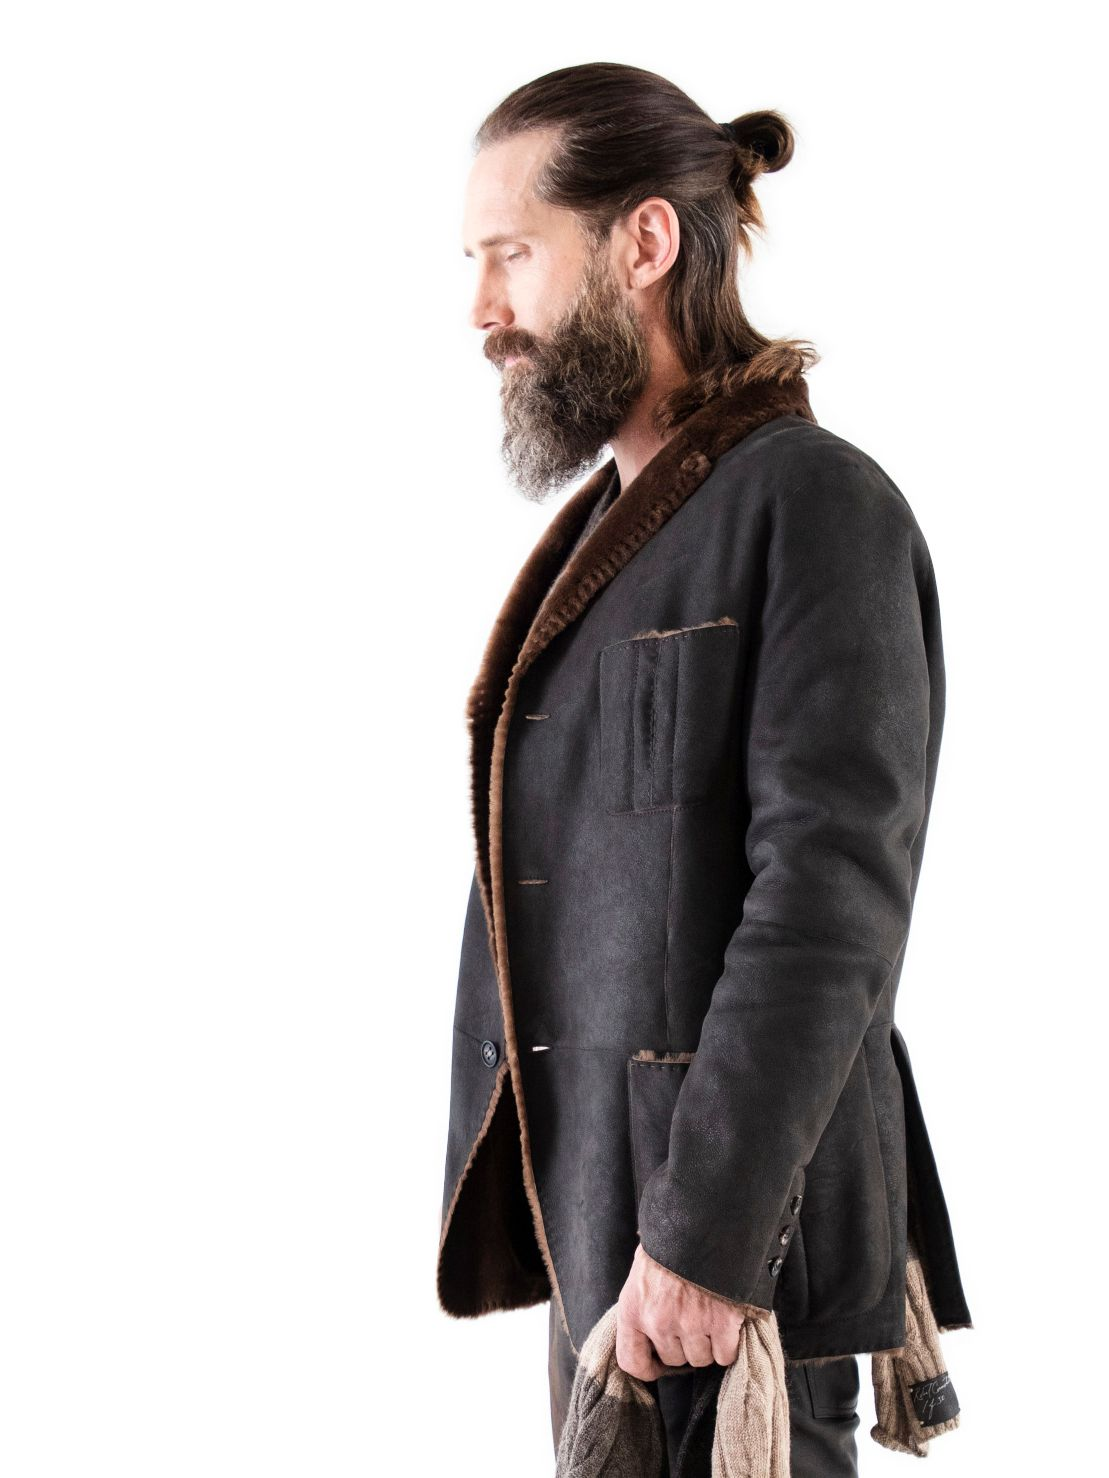 Silhouette of Spanish Lancon featherweight shearling with horn buttons, raw cut seams and patch pockets